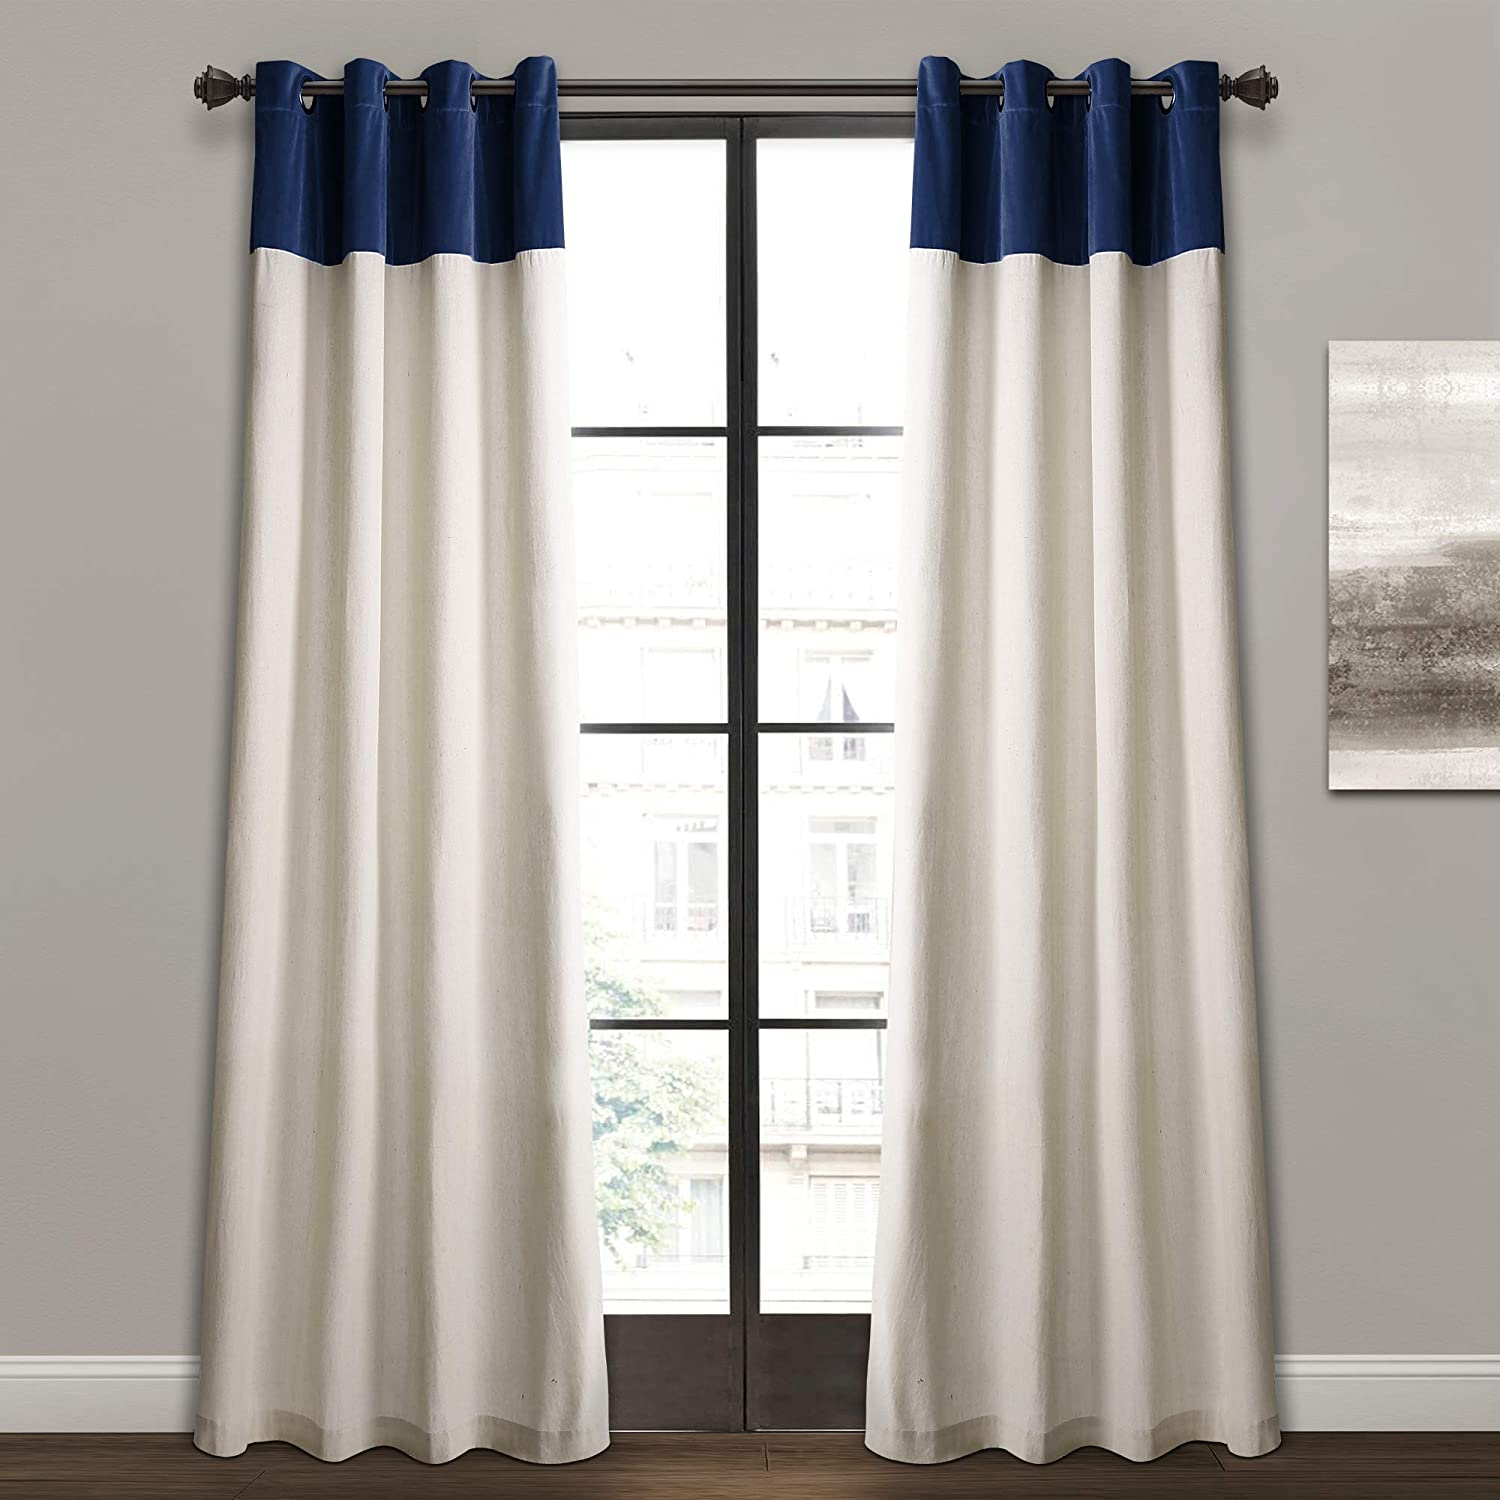 "Lush Decor Milo Linen Window Curtain Panel Pair, 84"" x 52"", Navy & Off-White, Navy"